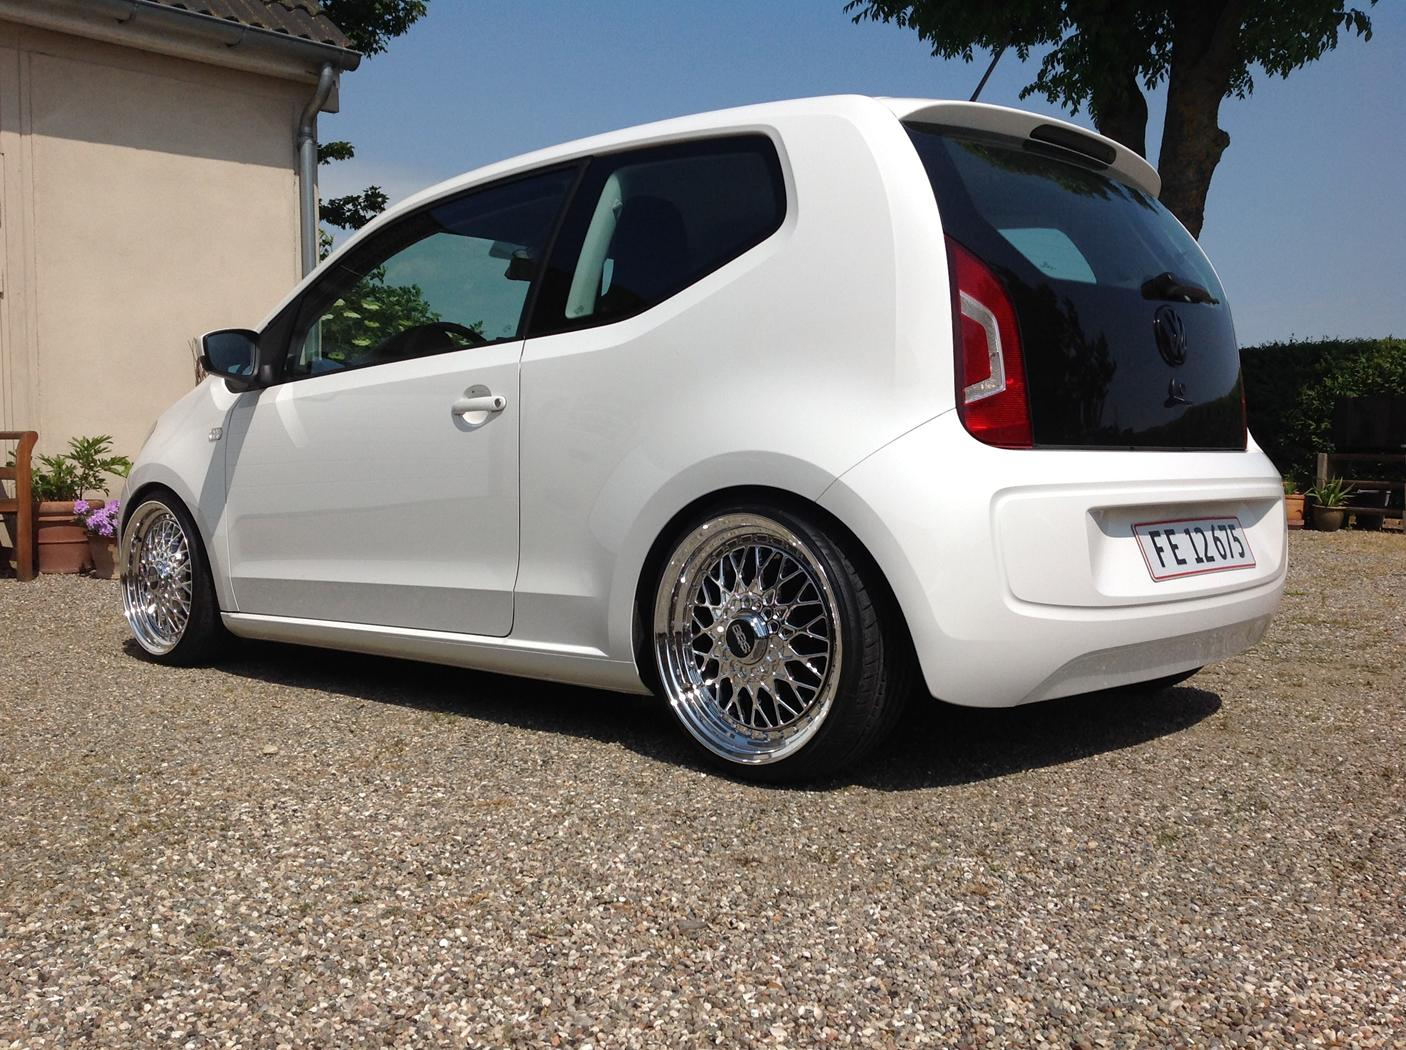 [Imagem: 2925518-vw-up-1_0-60-move-up-bmt]